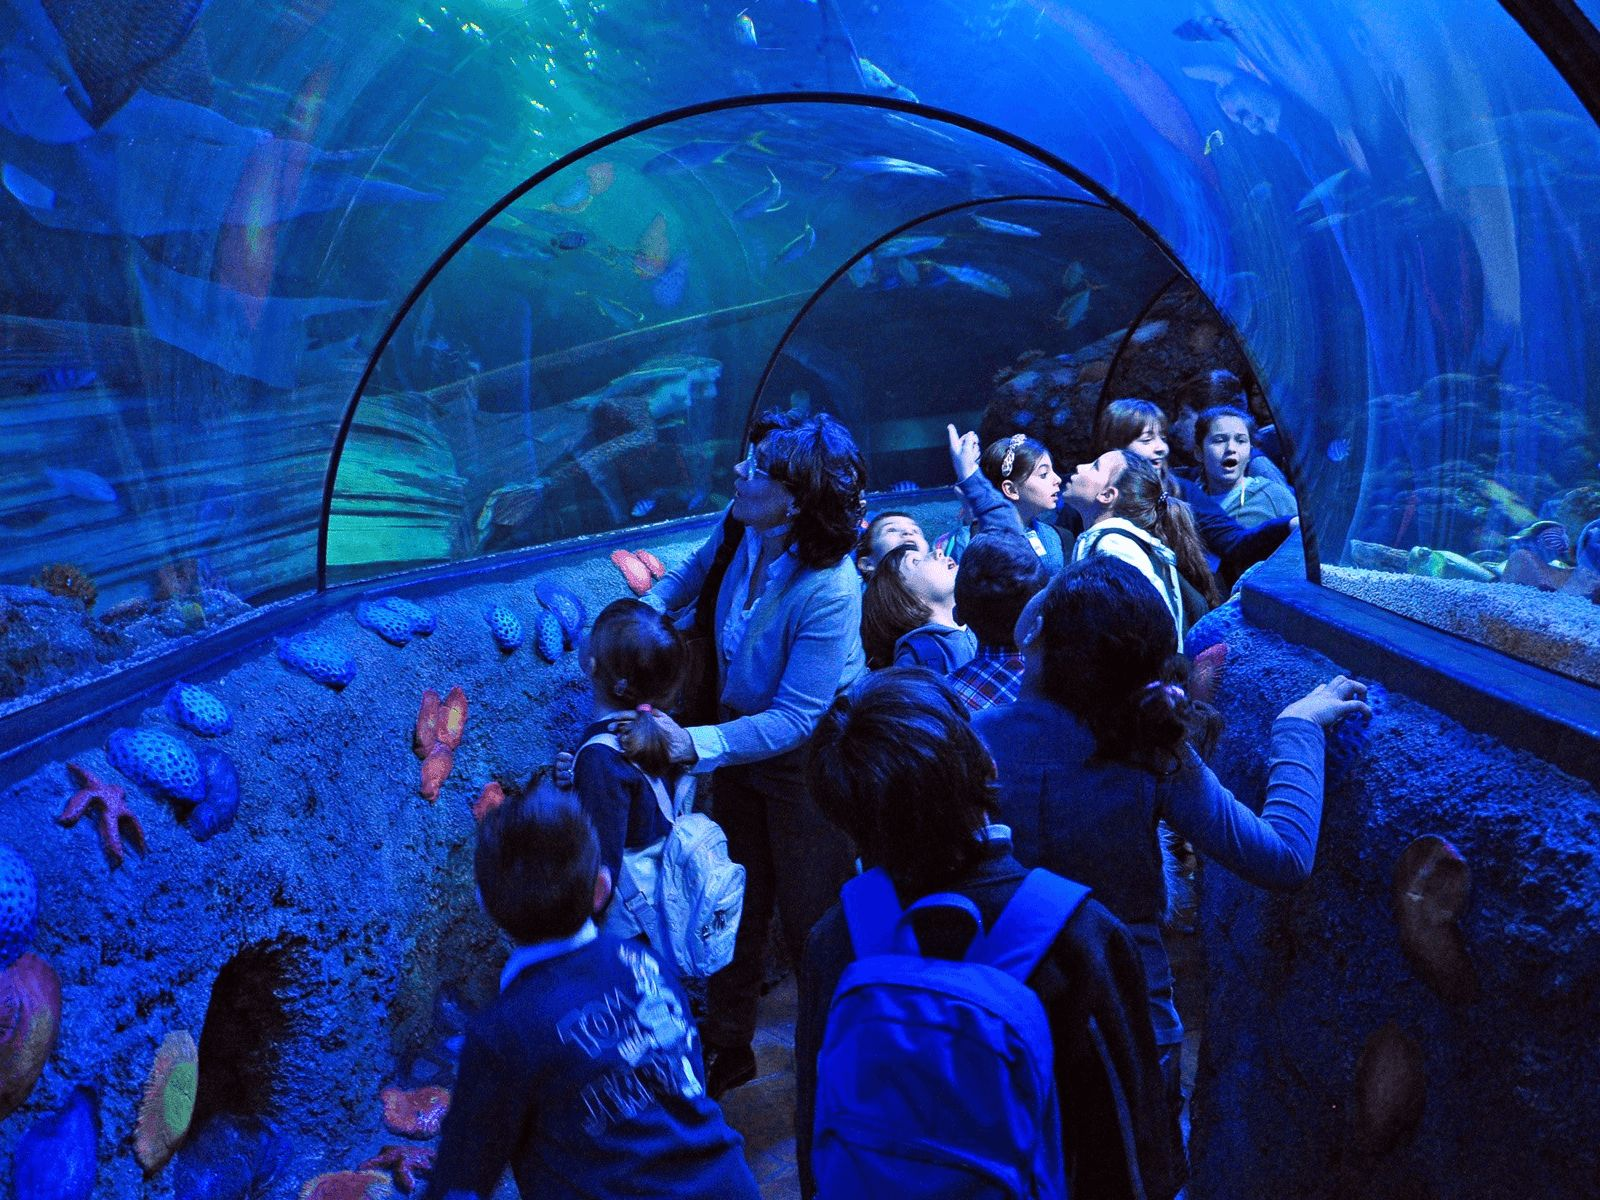 Italija top tour: Sea life aquarium